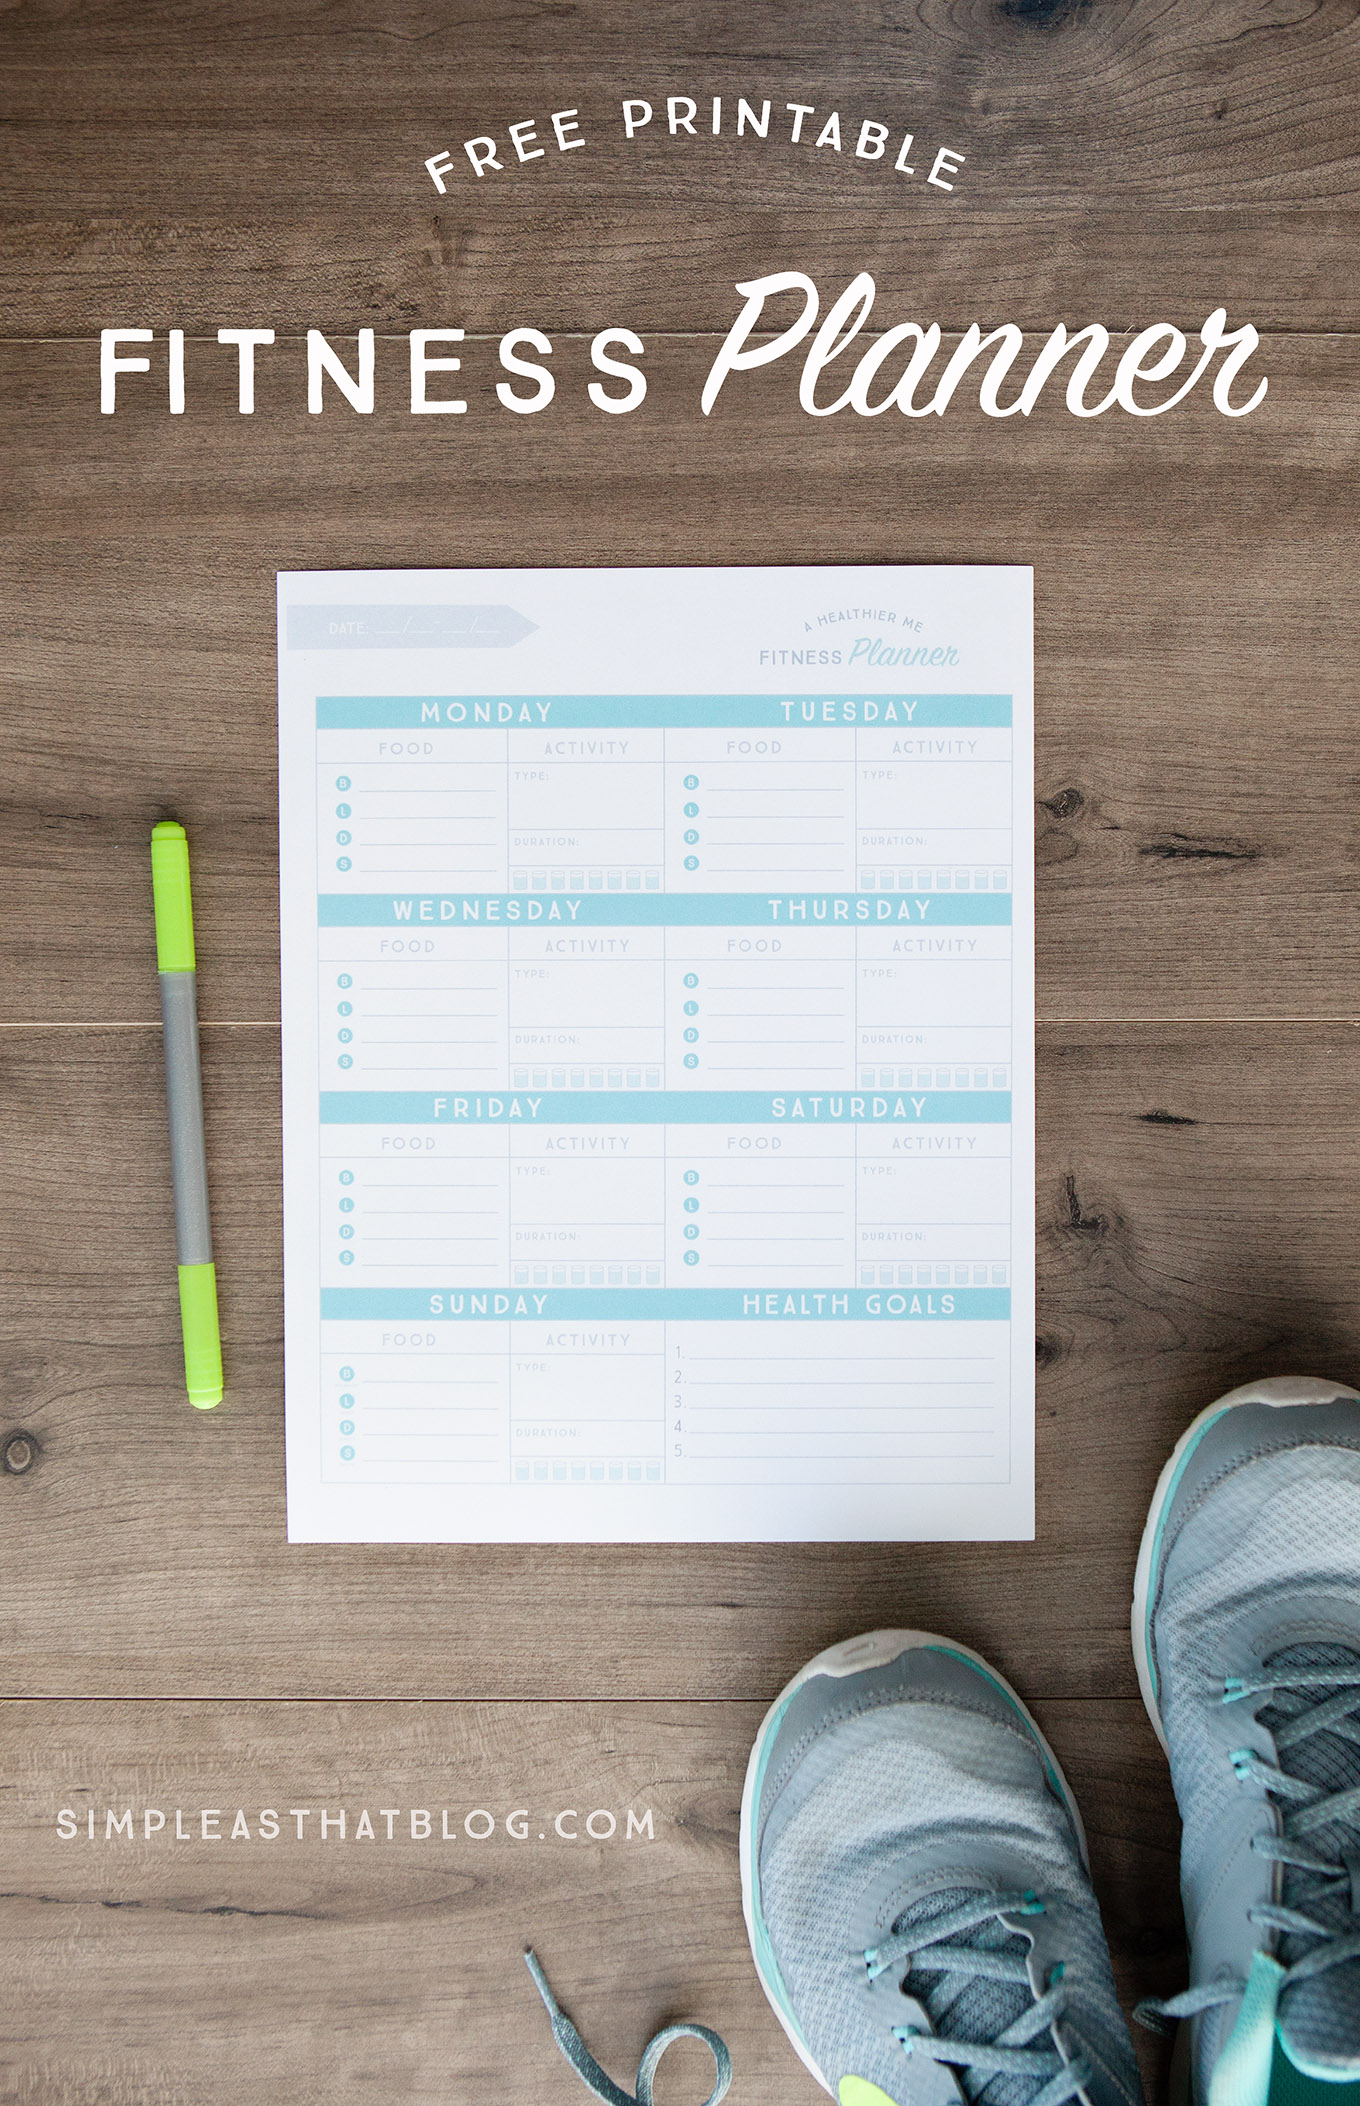 photograph relating to Free Printable Fitness Planner called Free of charge Printable Exercise Planner